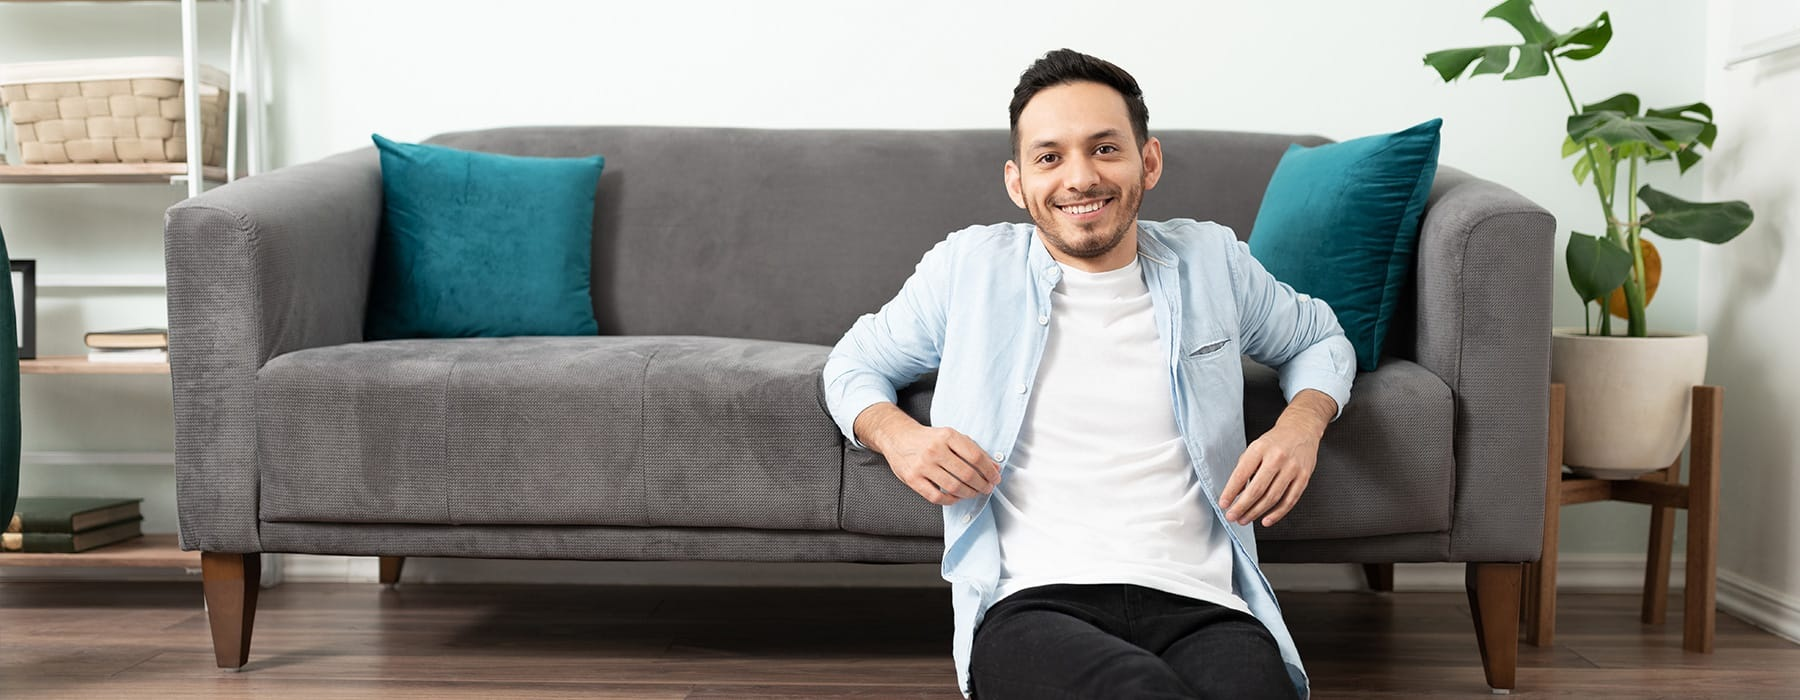 lifestyle image of a man sitting on the floor, beside a modern couch